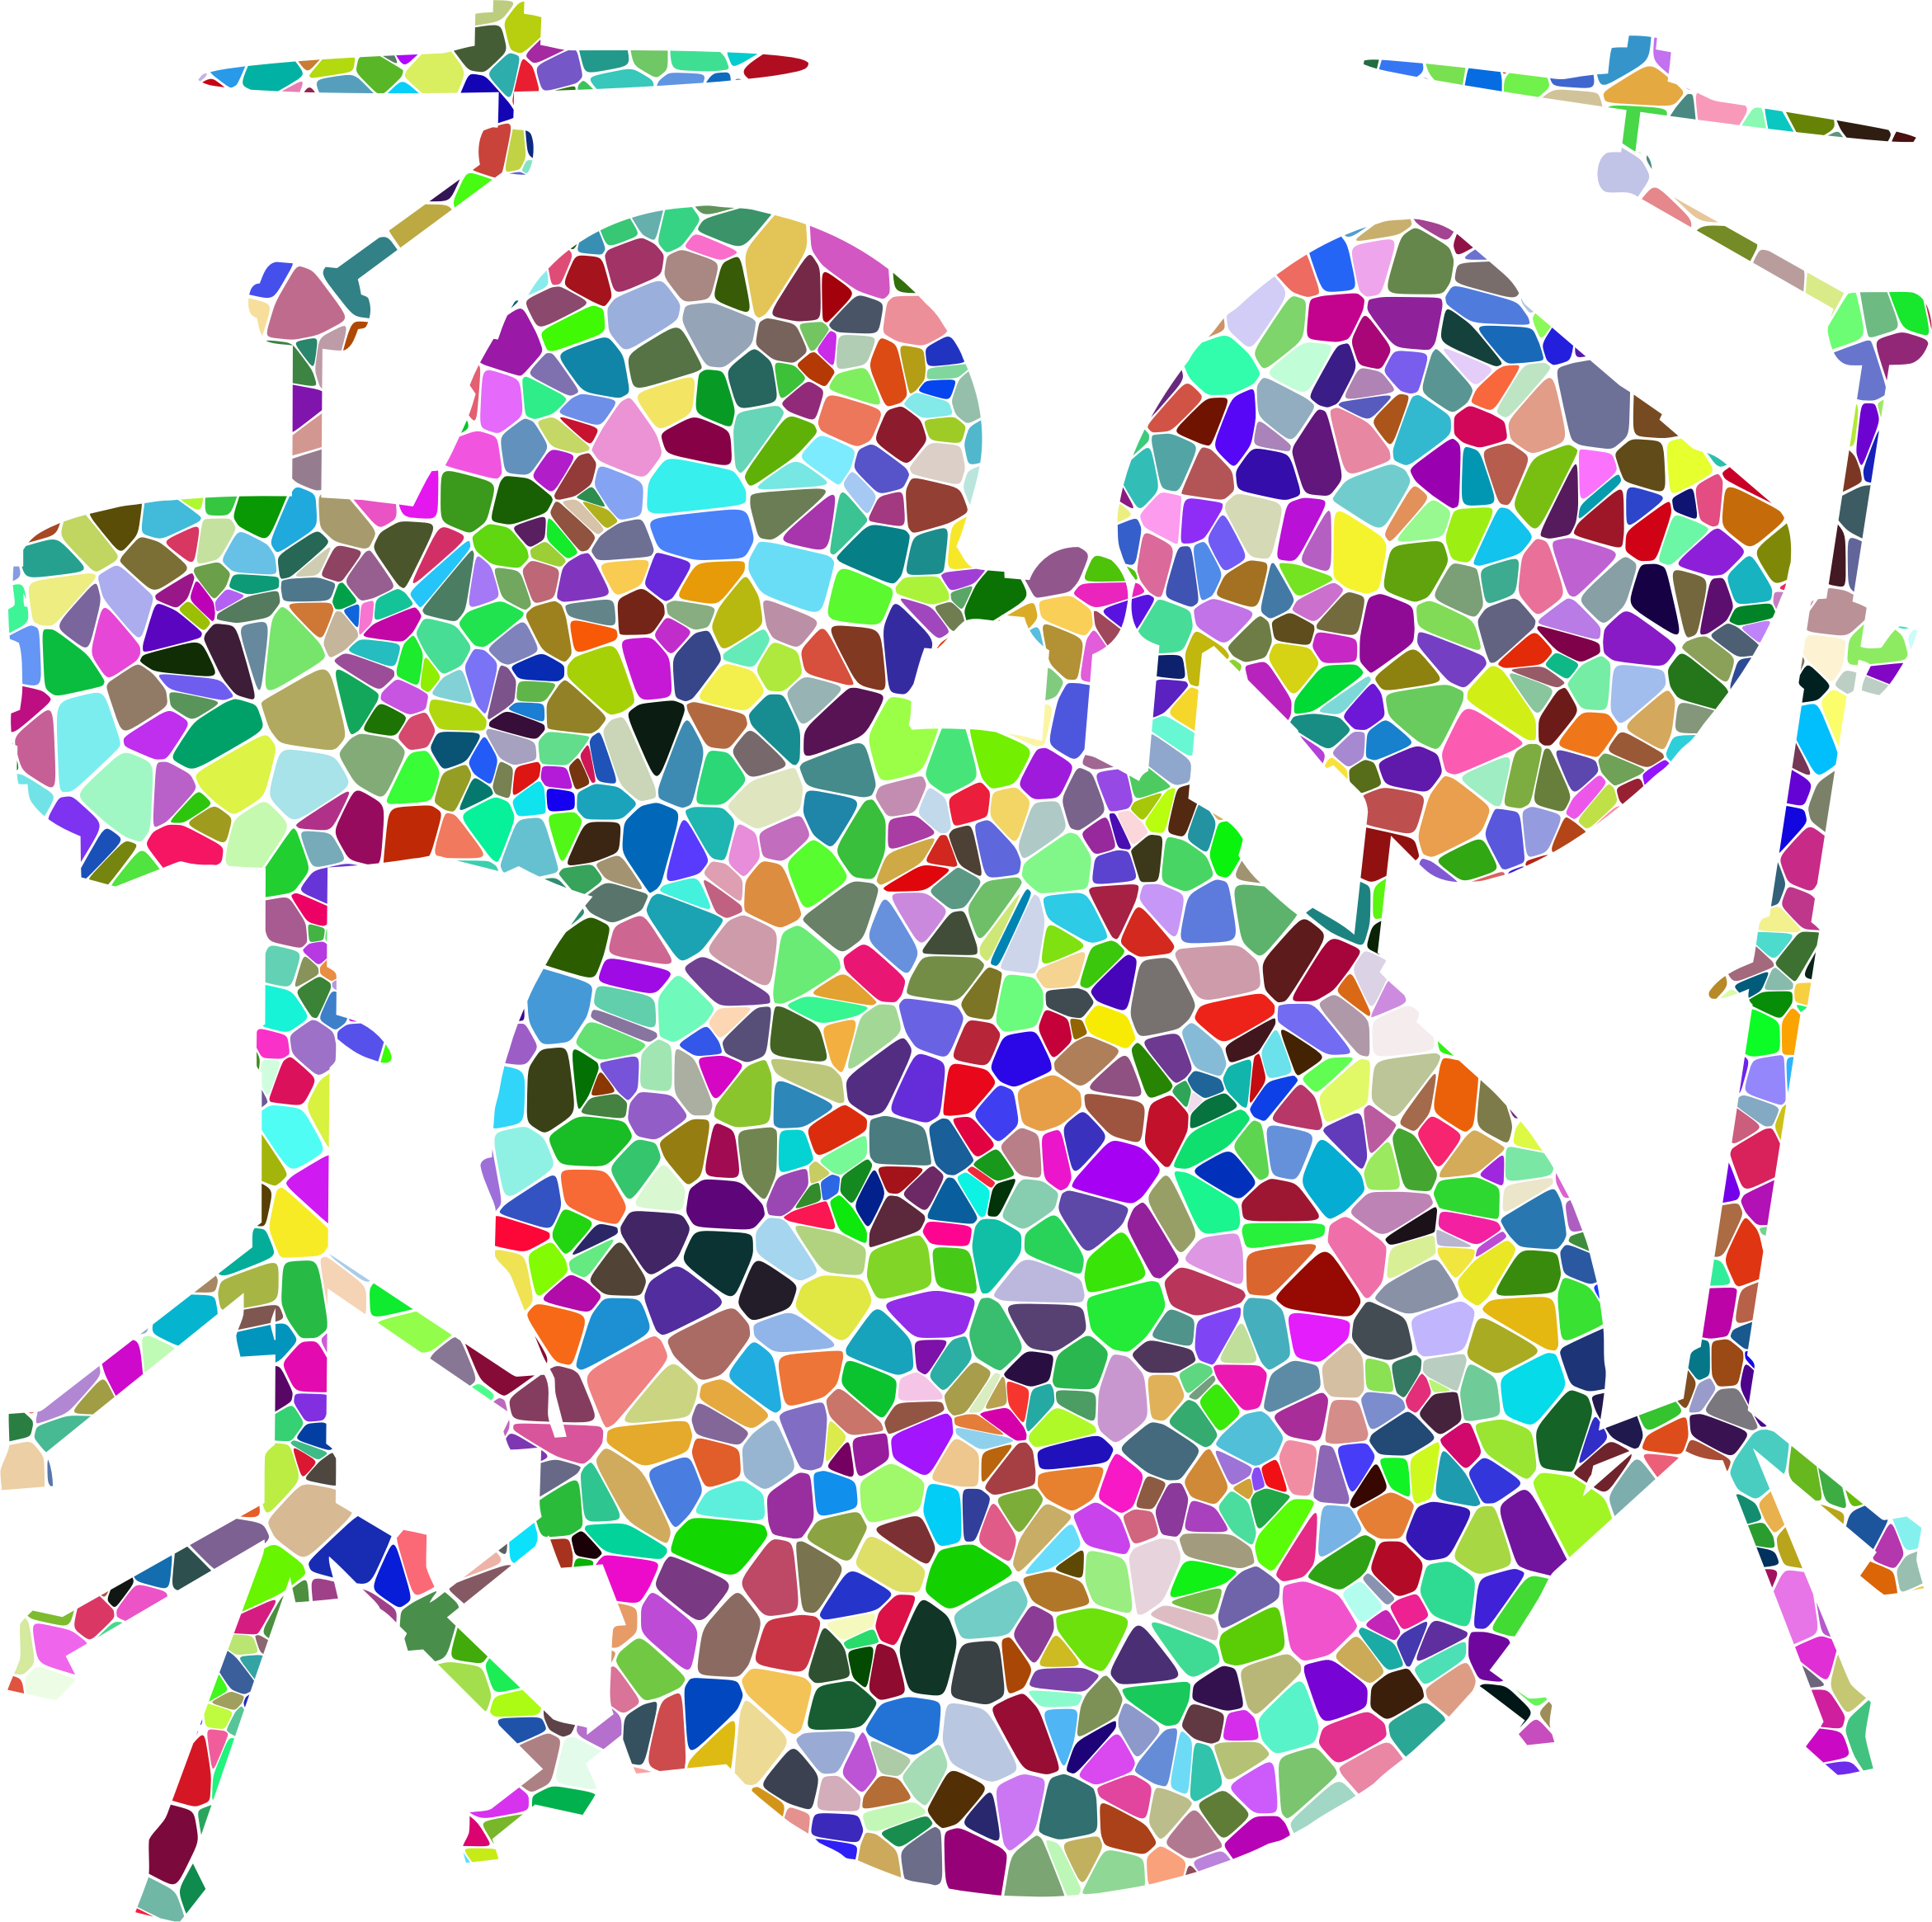 Prismatic Tiled Drums Set Silhouette by GDJ